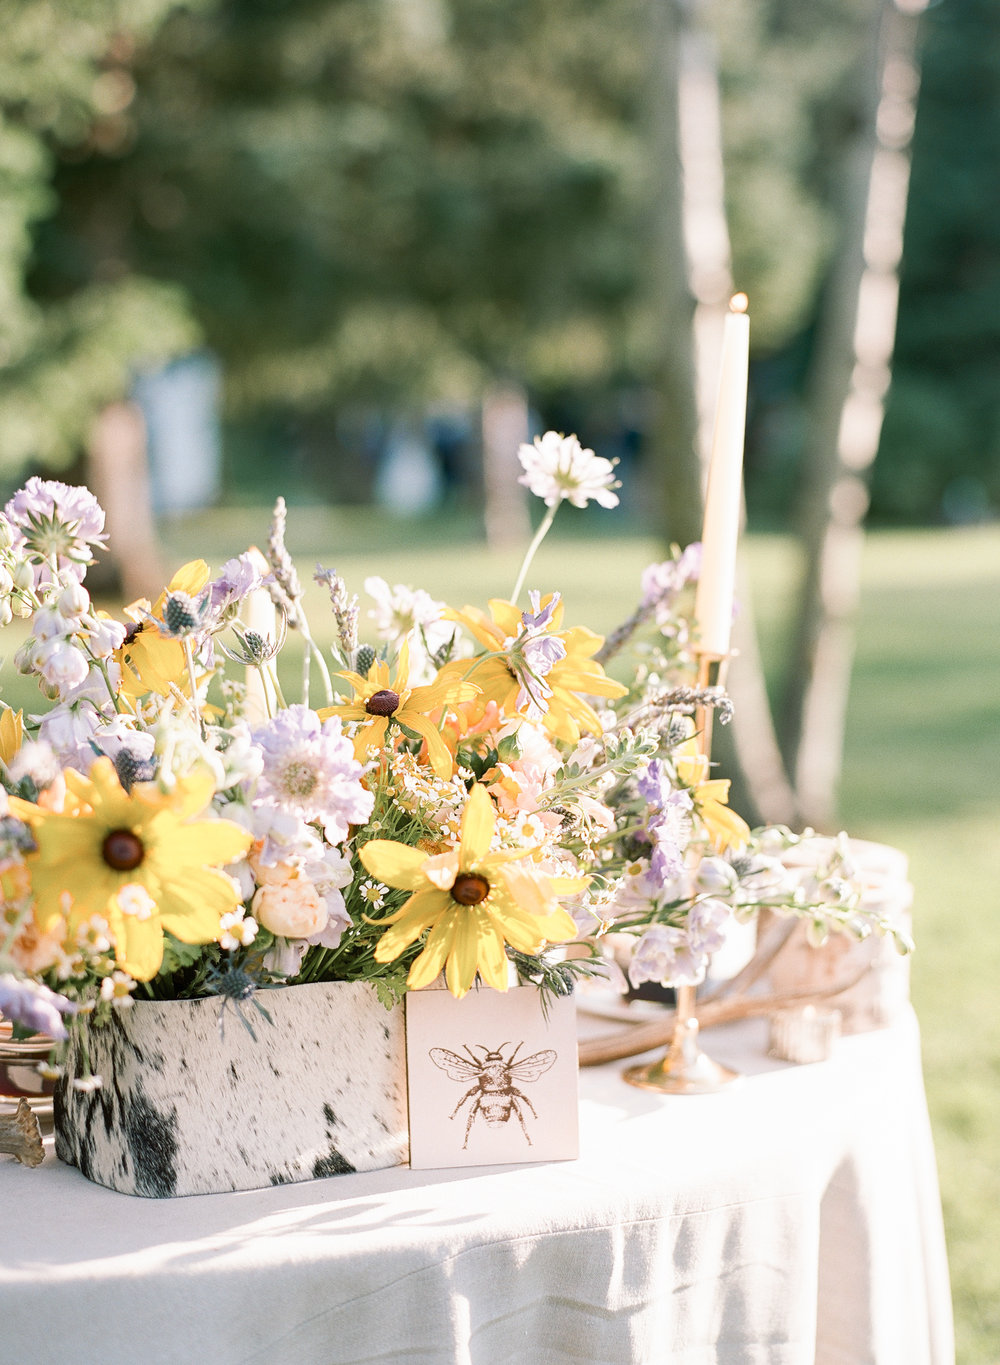 Custom wedding favors, beautiful floral design with local wildflowers, Sylvie Gil Photography